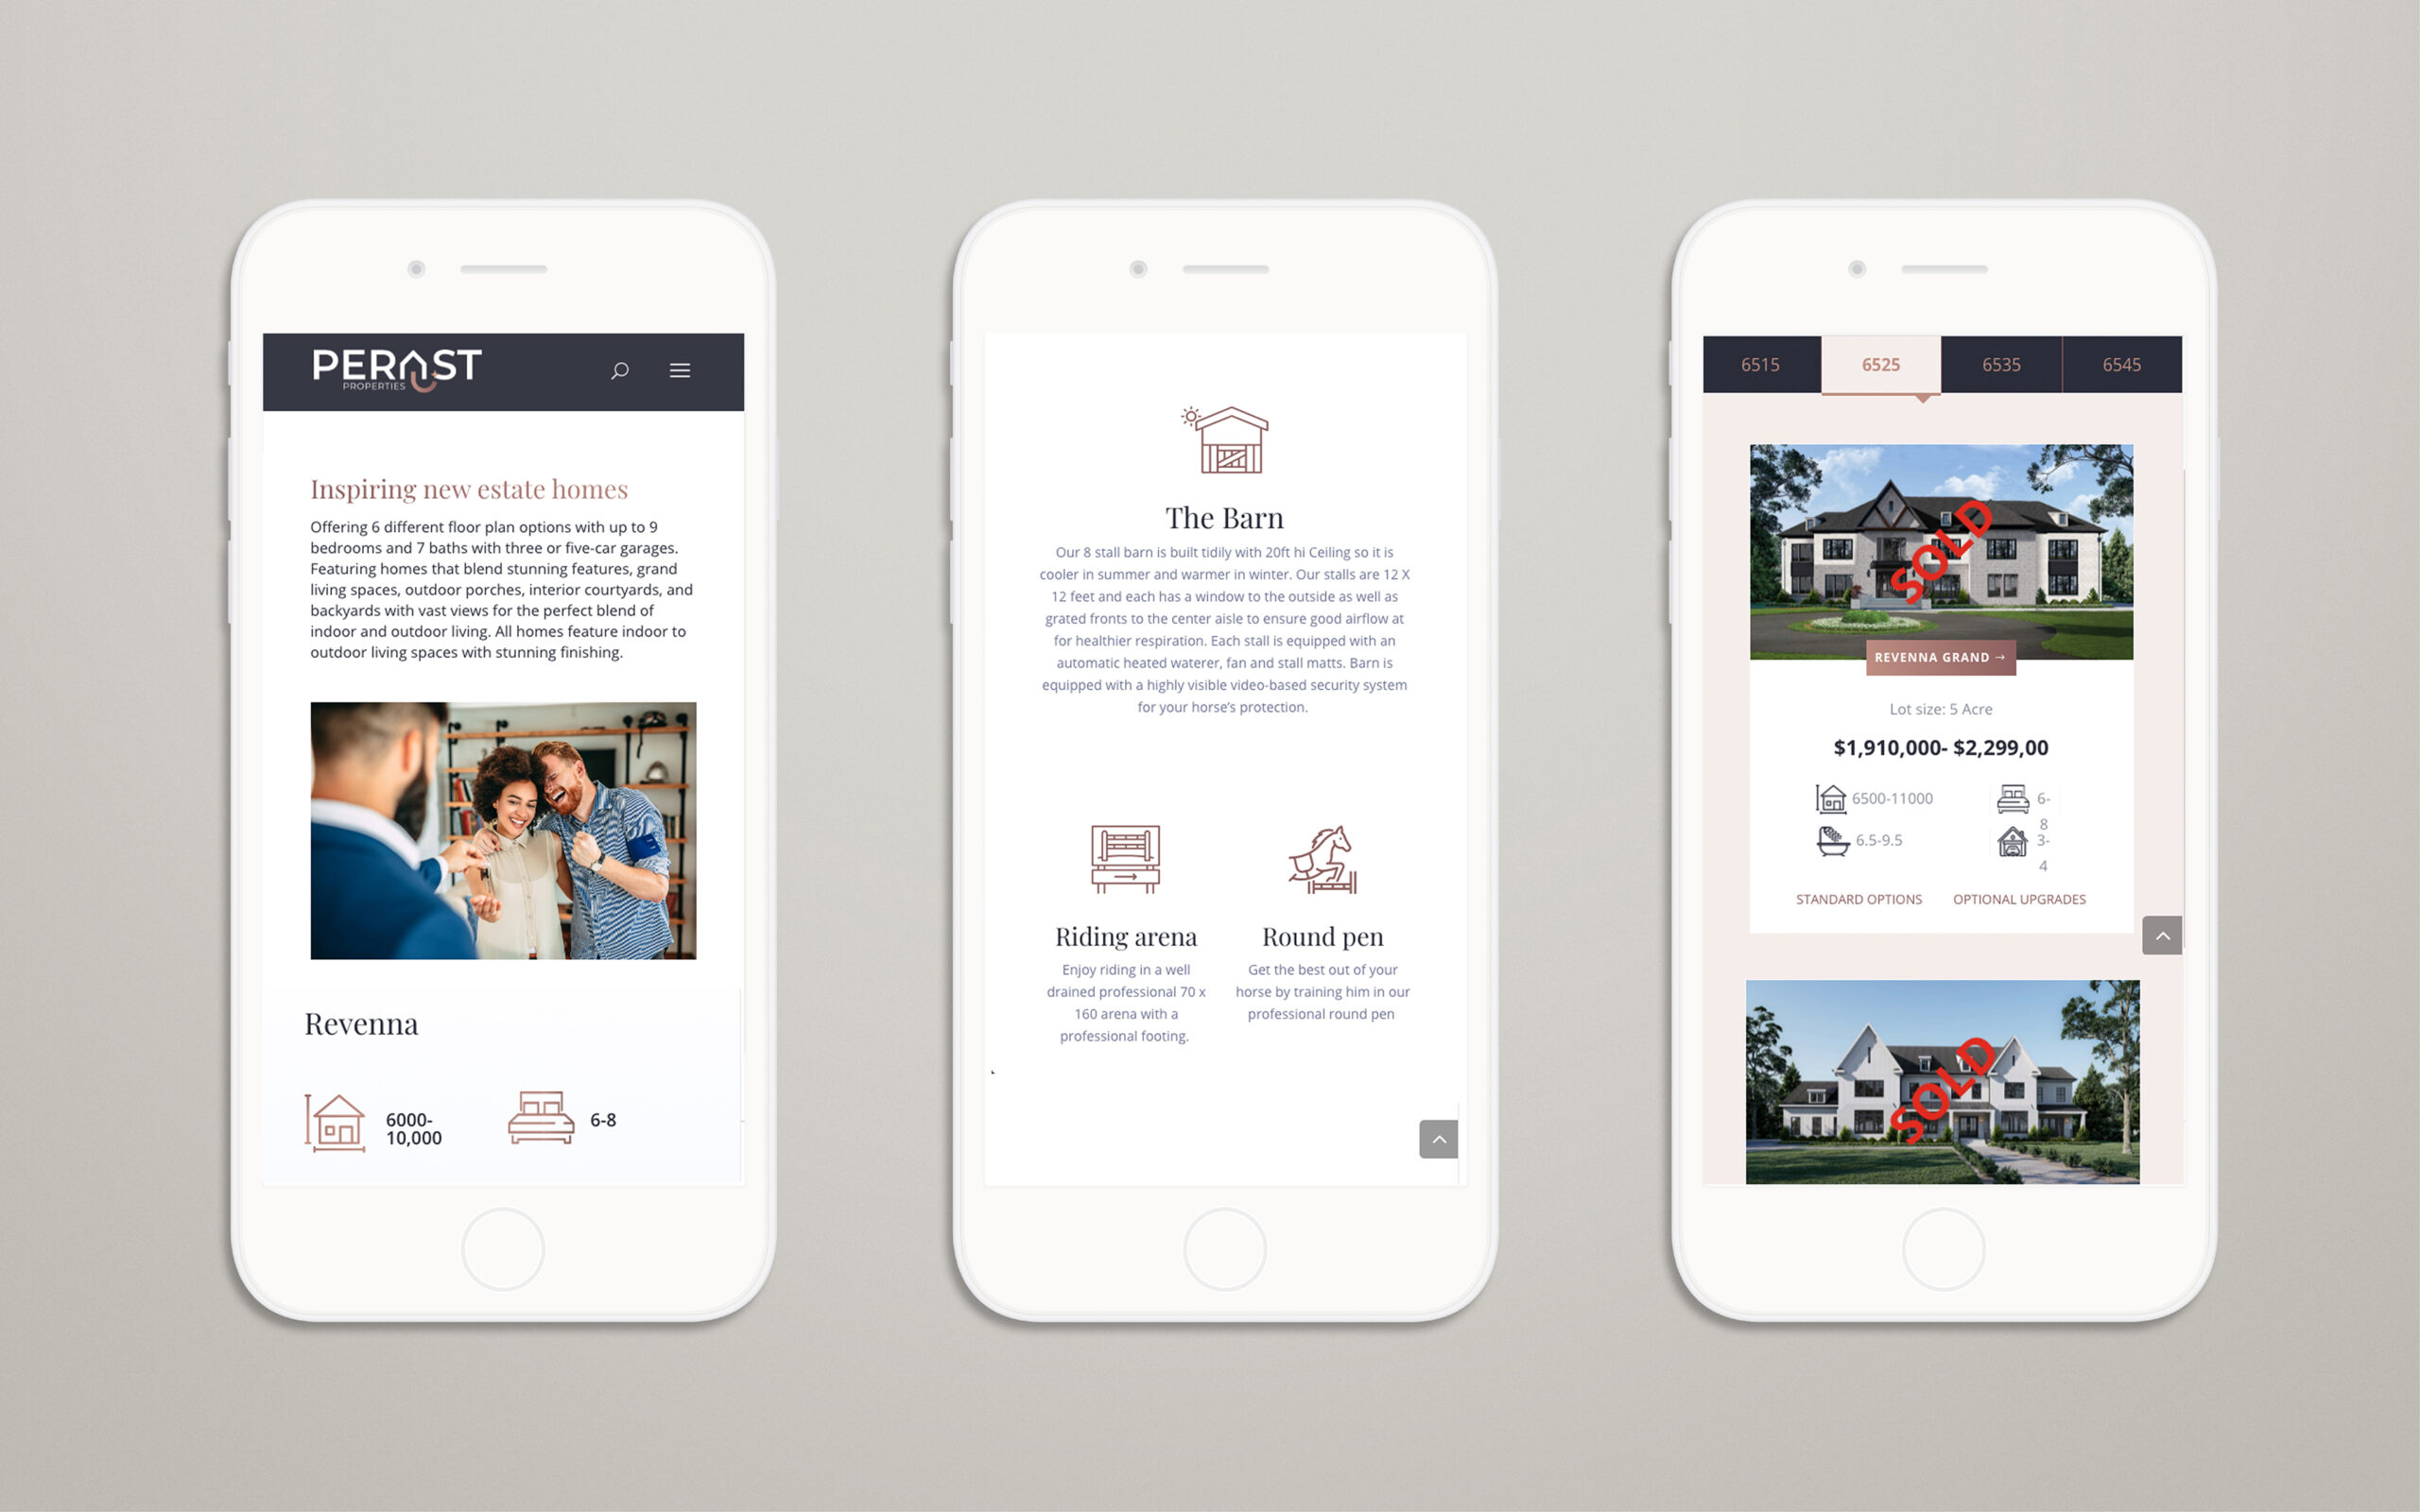 Responsive design look great and even work well on tablet and Smartphone just as on desktops and laptops.